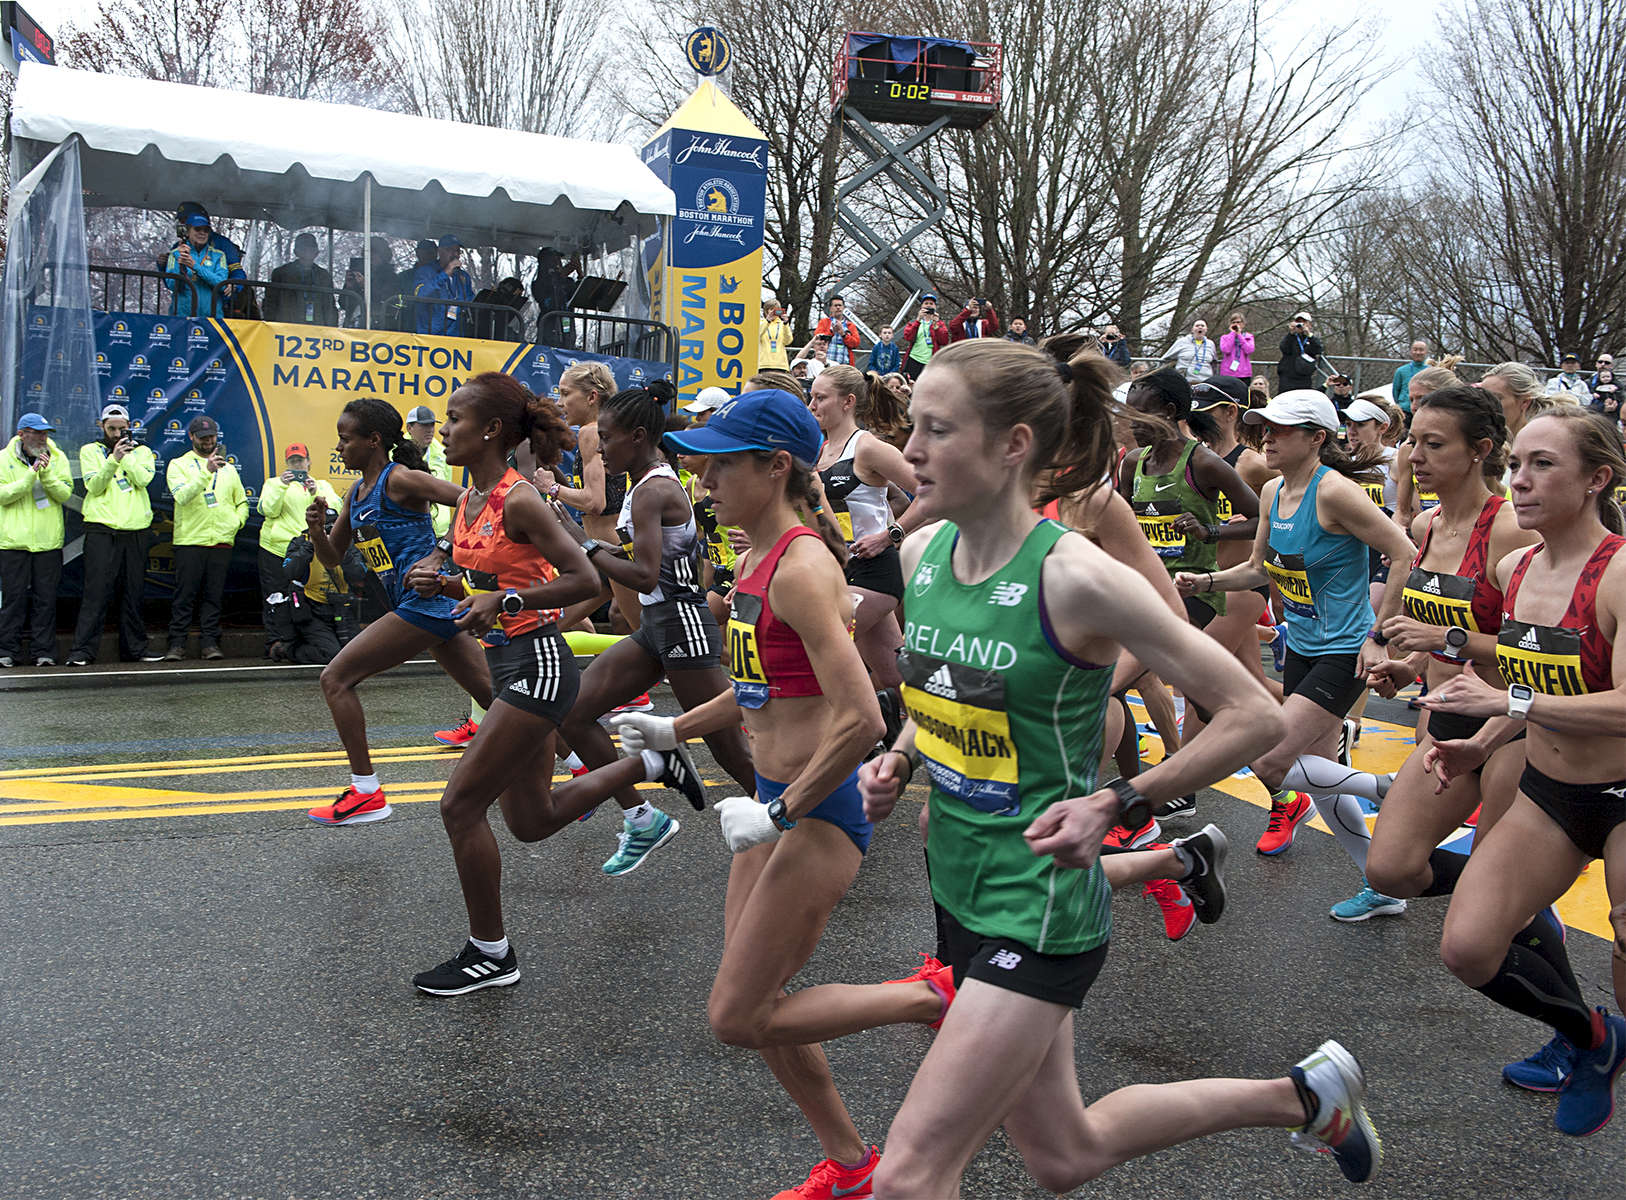 4/15/19--HOPKINTON-- The elite women start at the Boston Marathon Monday. [Daily News and Wicked Local Staff Photo/Art Illman]